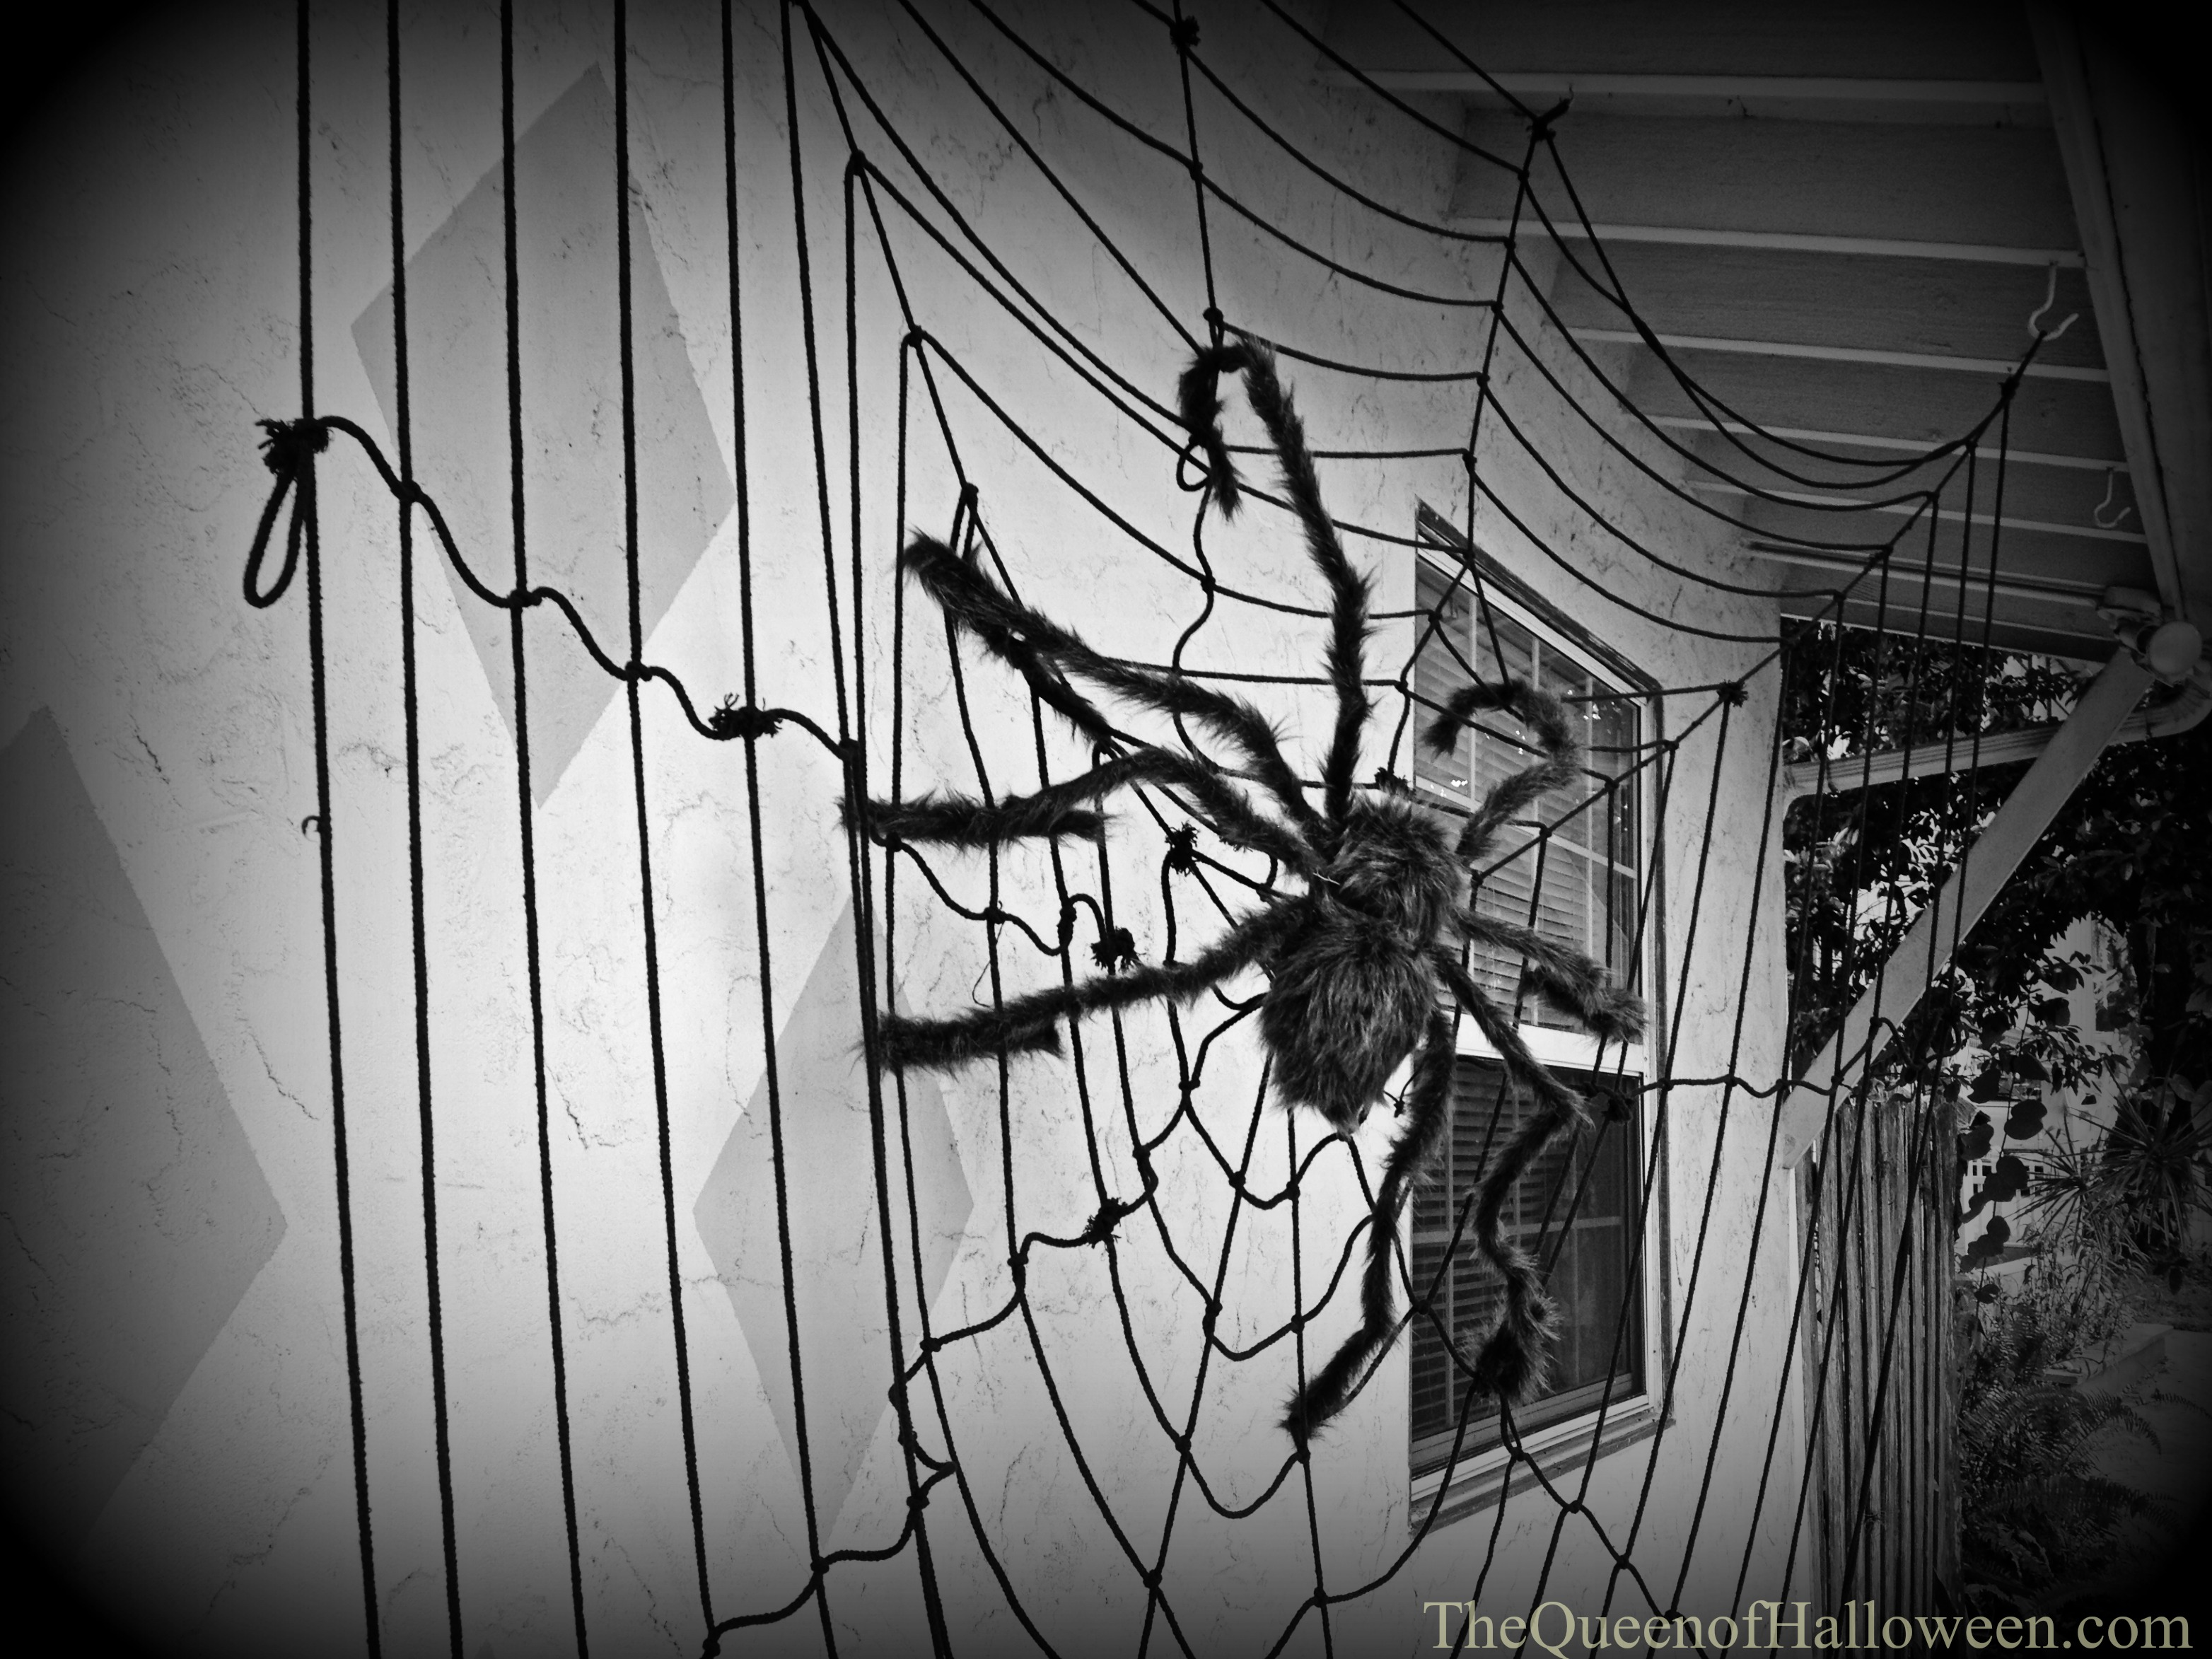 The Queen of Halloween outdoor spider decoration